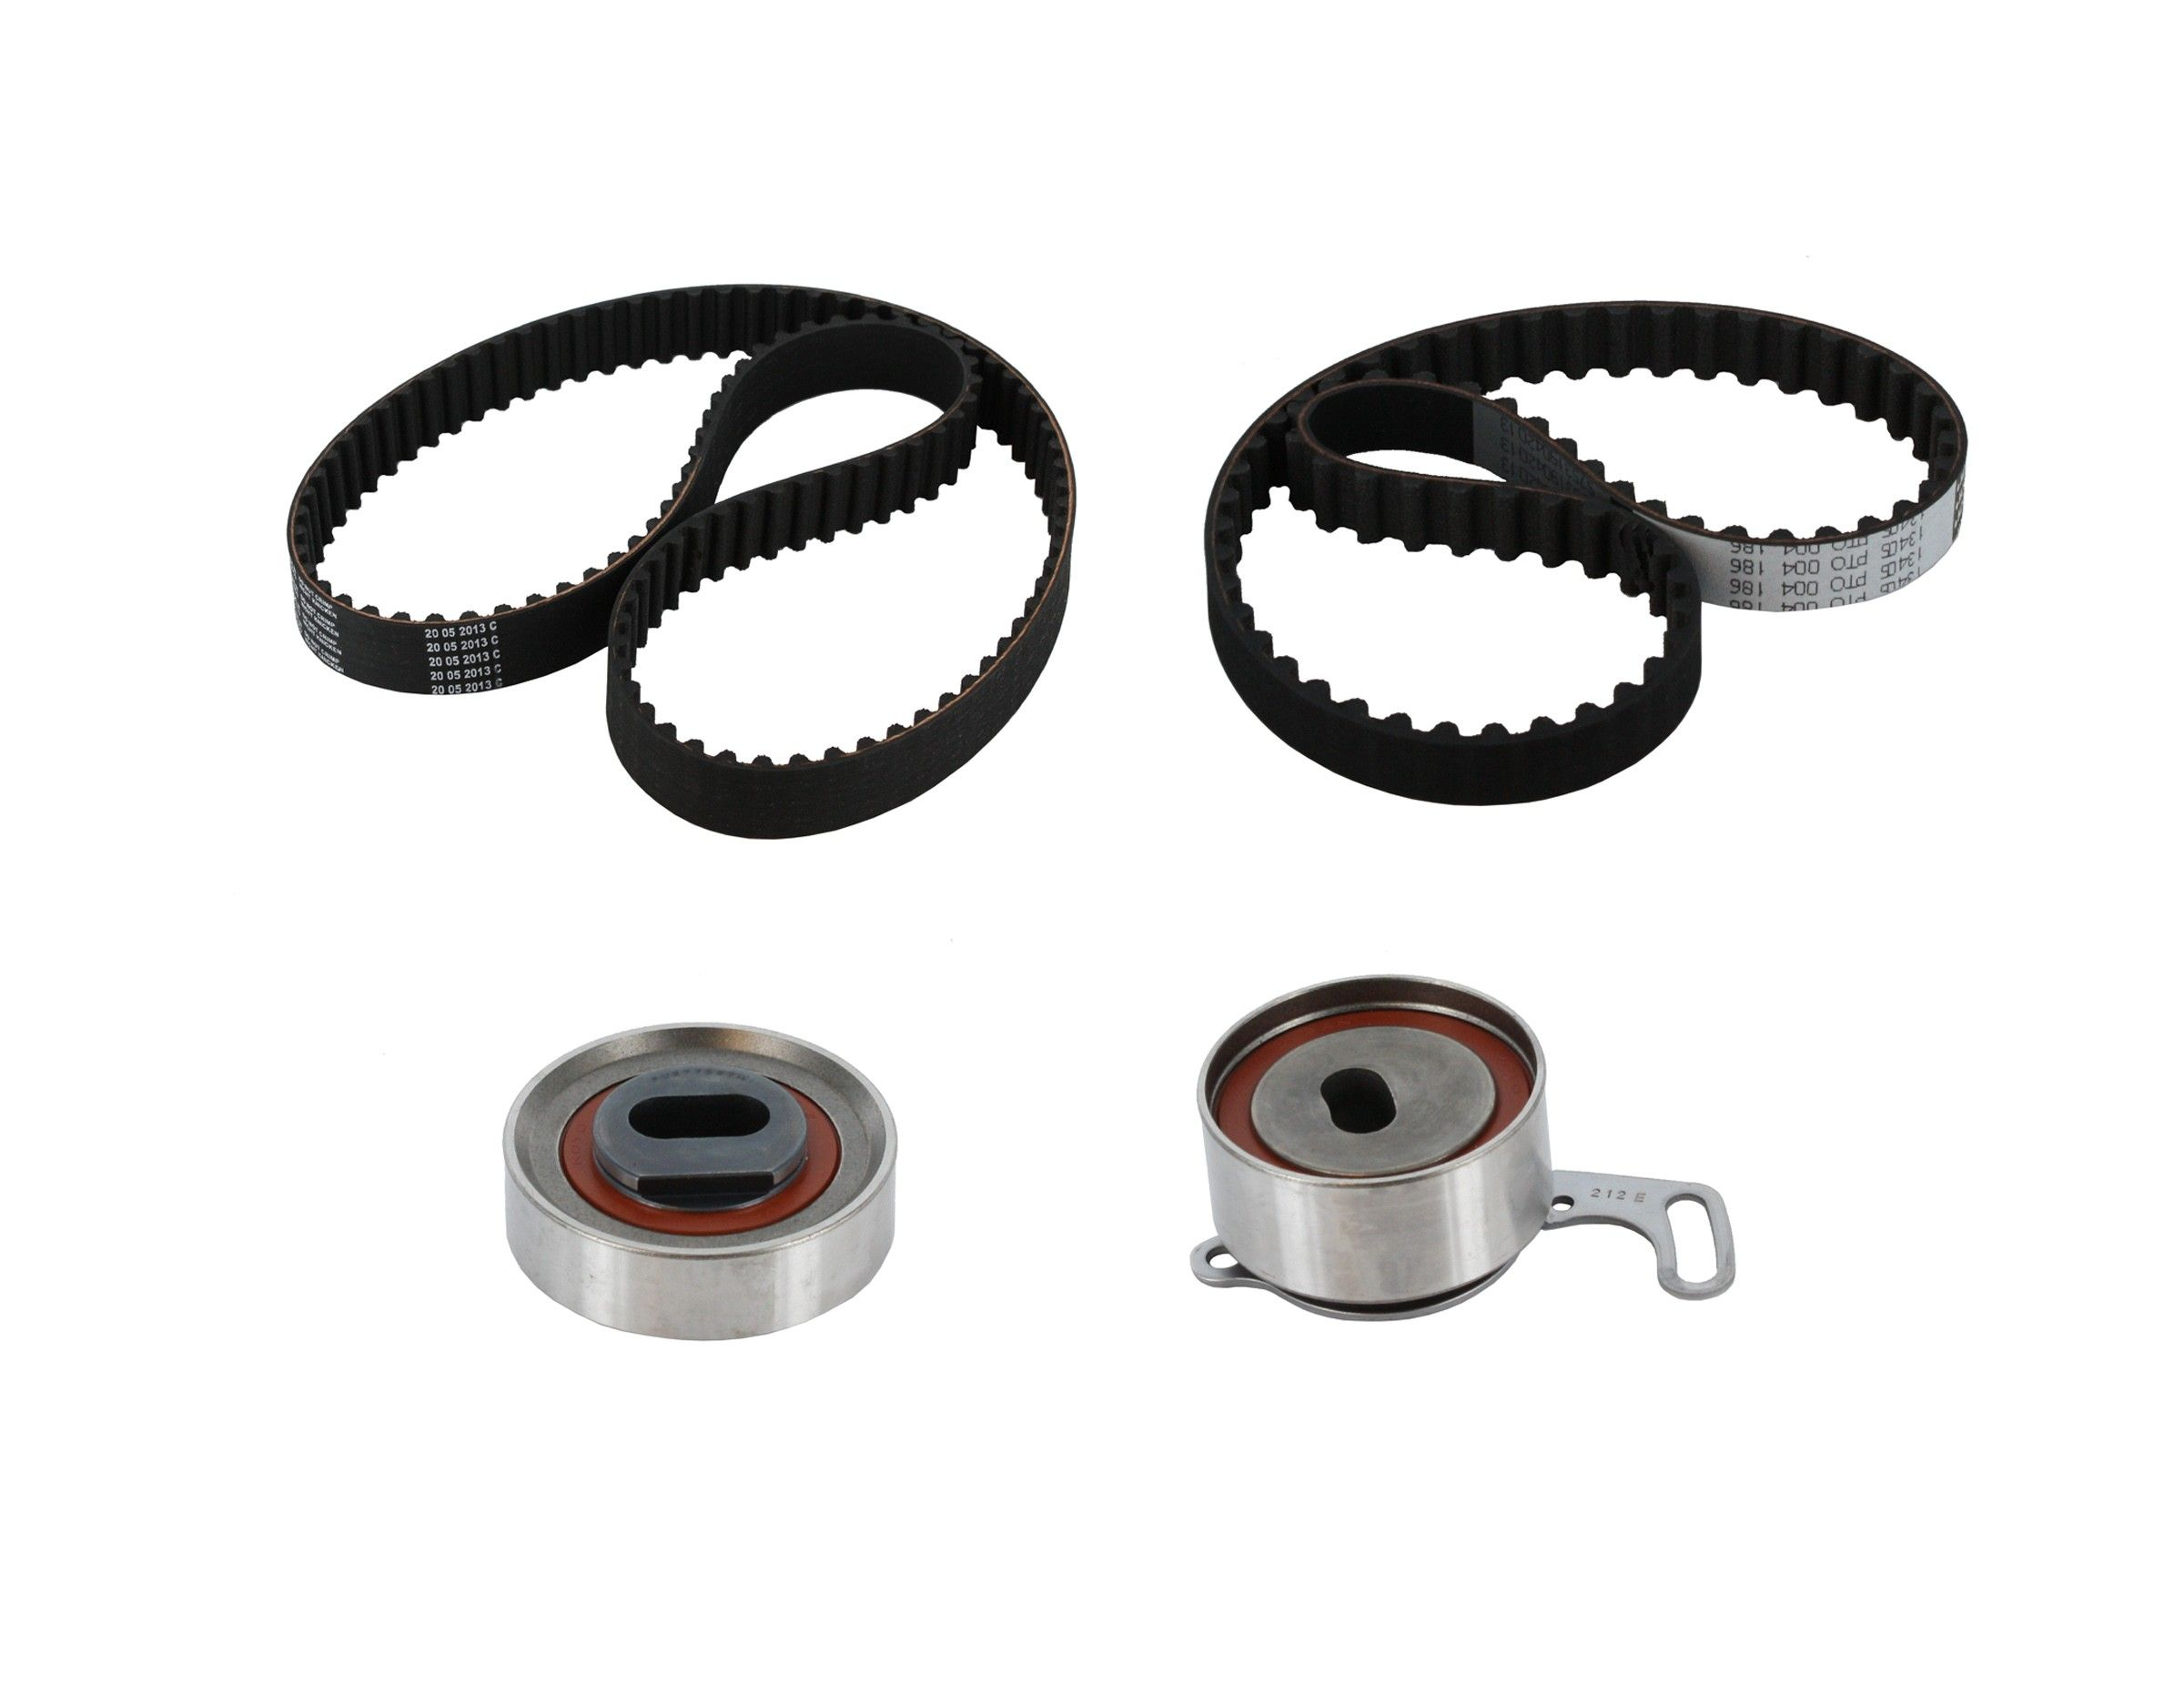 Honda Prelude Engine Timing Belt Kit Replacement Crp Dayco Go Parts 1992 Balancer 1996 4 Cyl 22l Tb186 187k1 Interference Eng